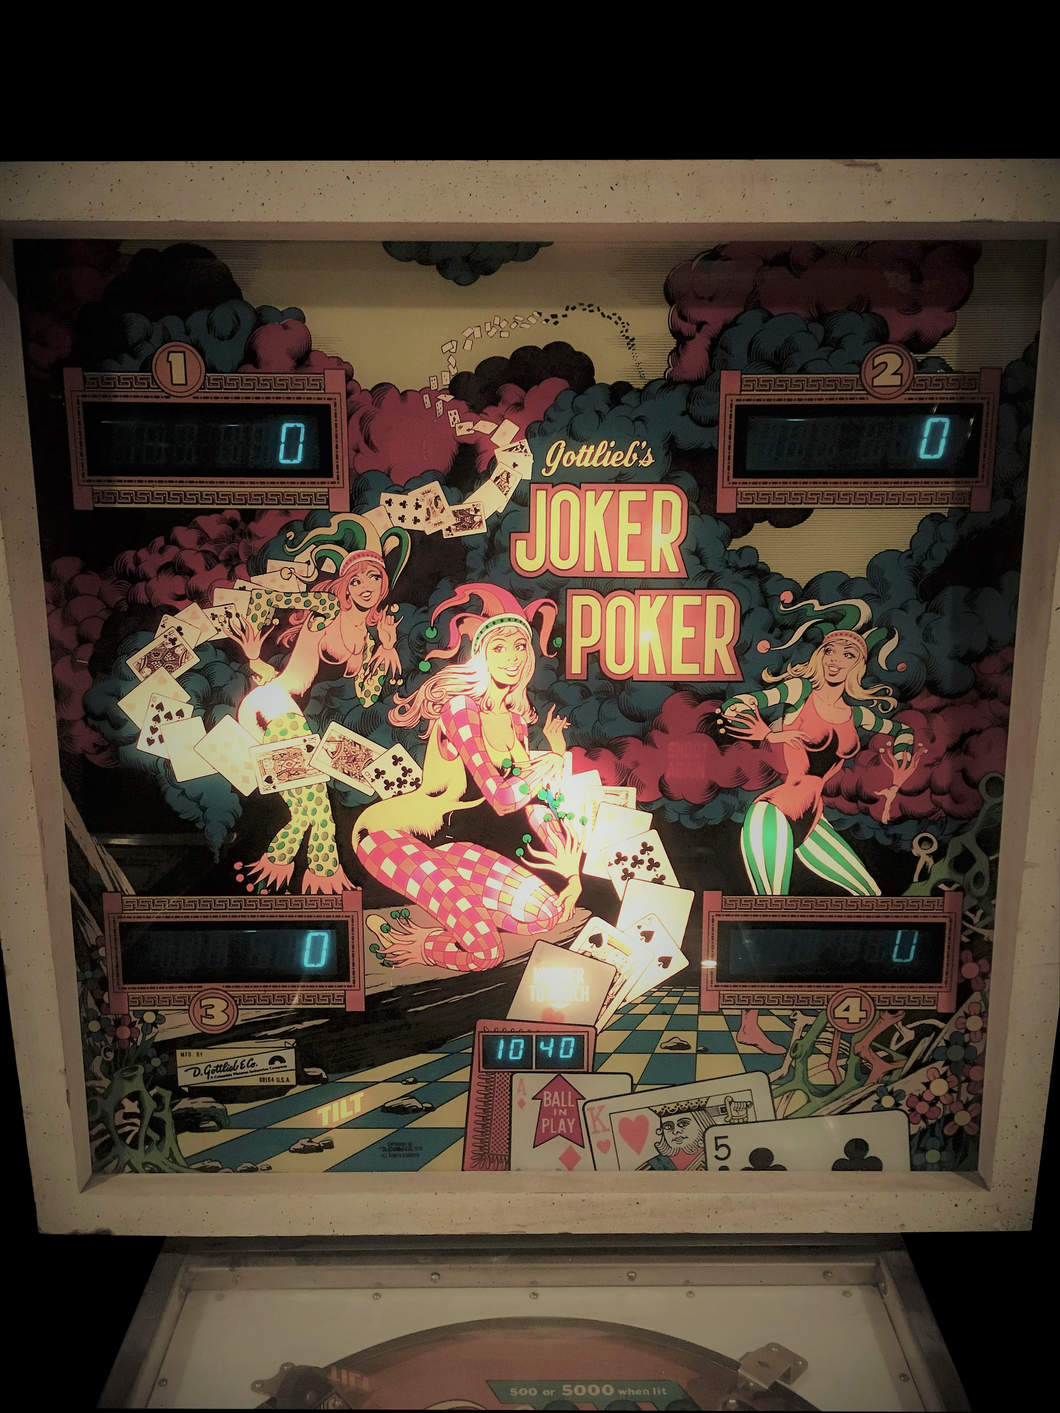 Joker Poker Pinball Machine